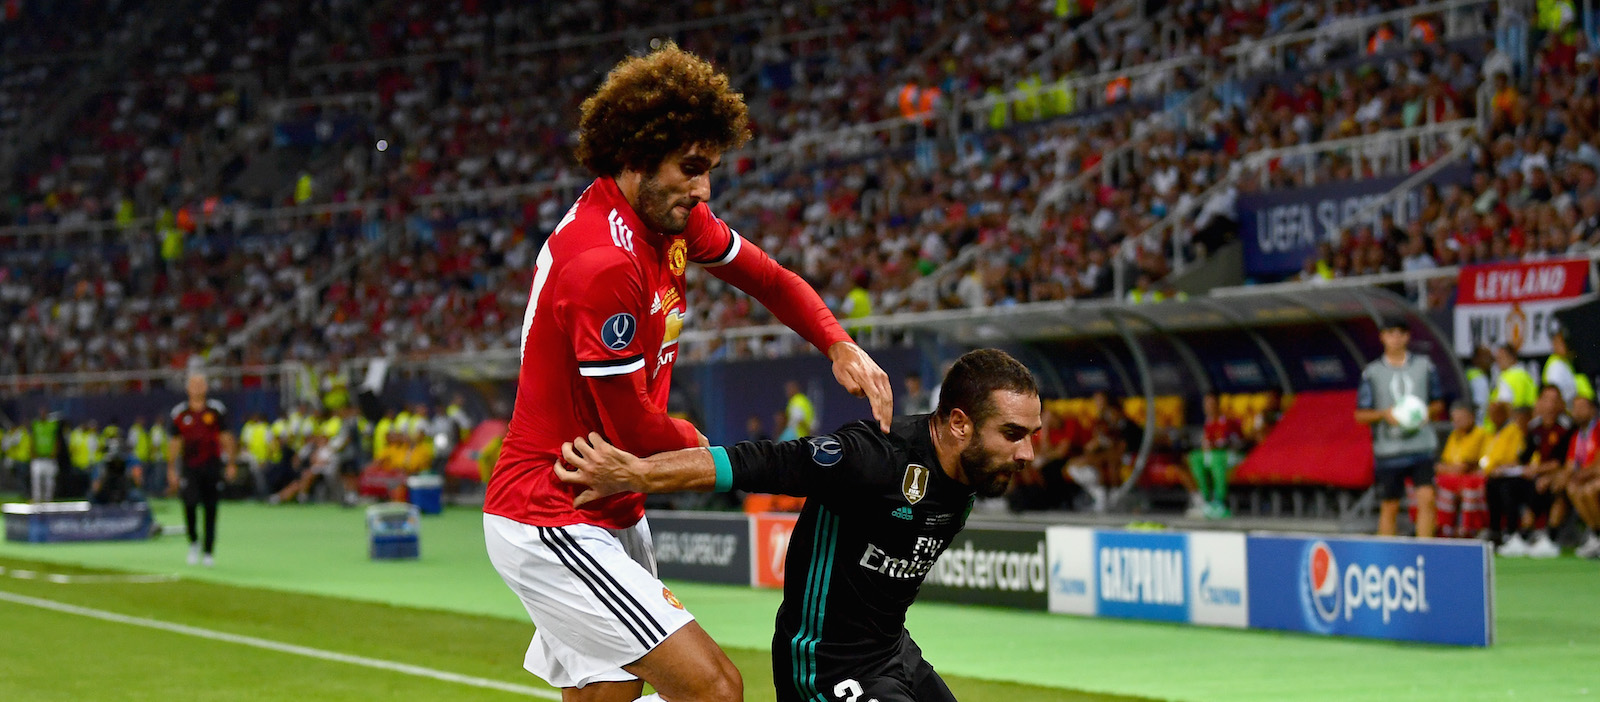 Jose Mourinho speaks out about Marouane Fellaini's knee ligament injury